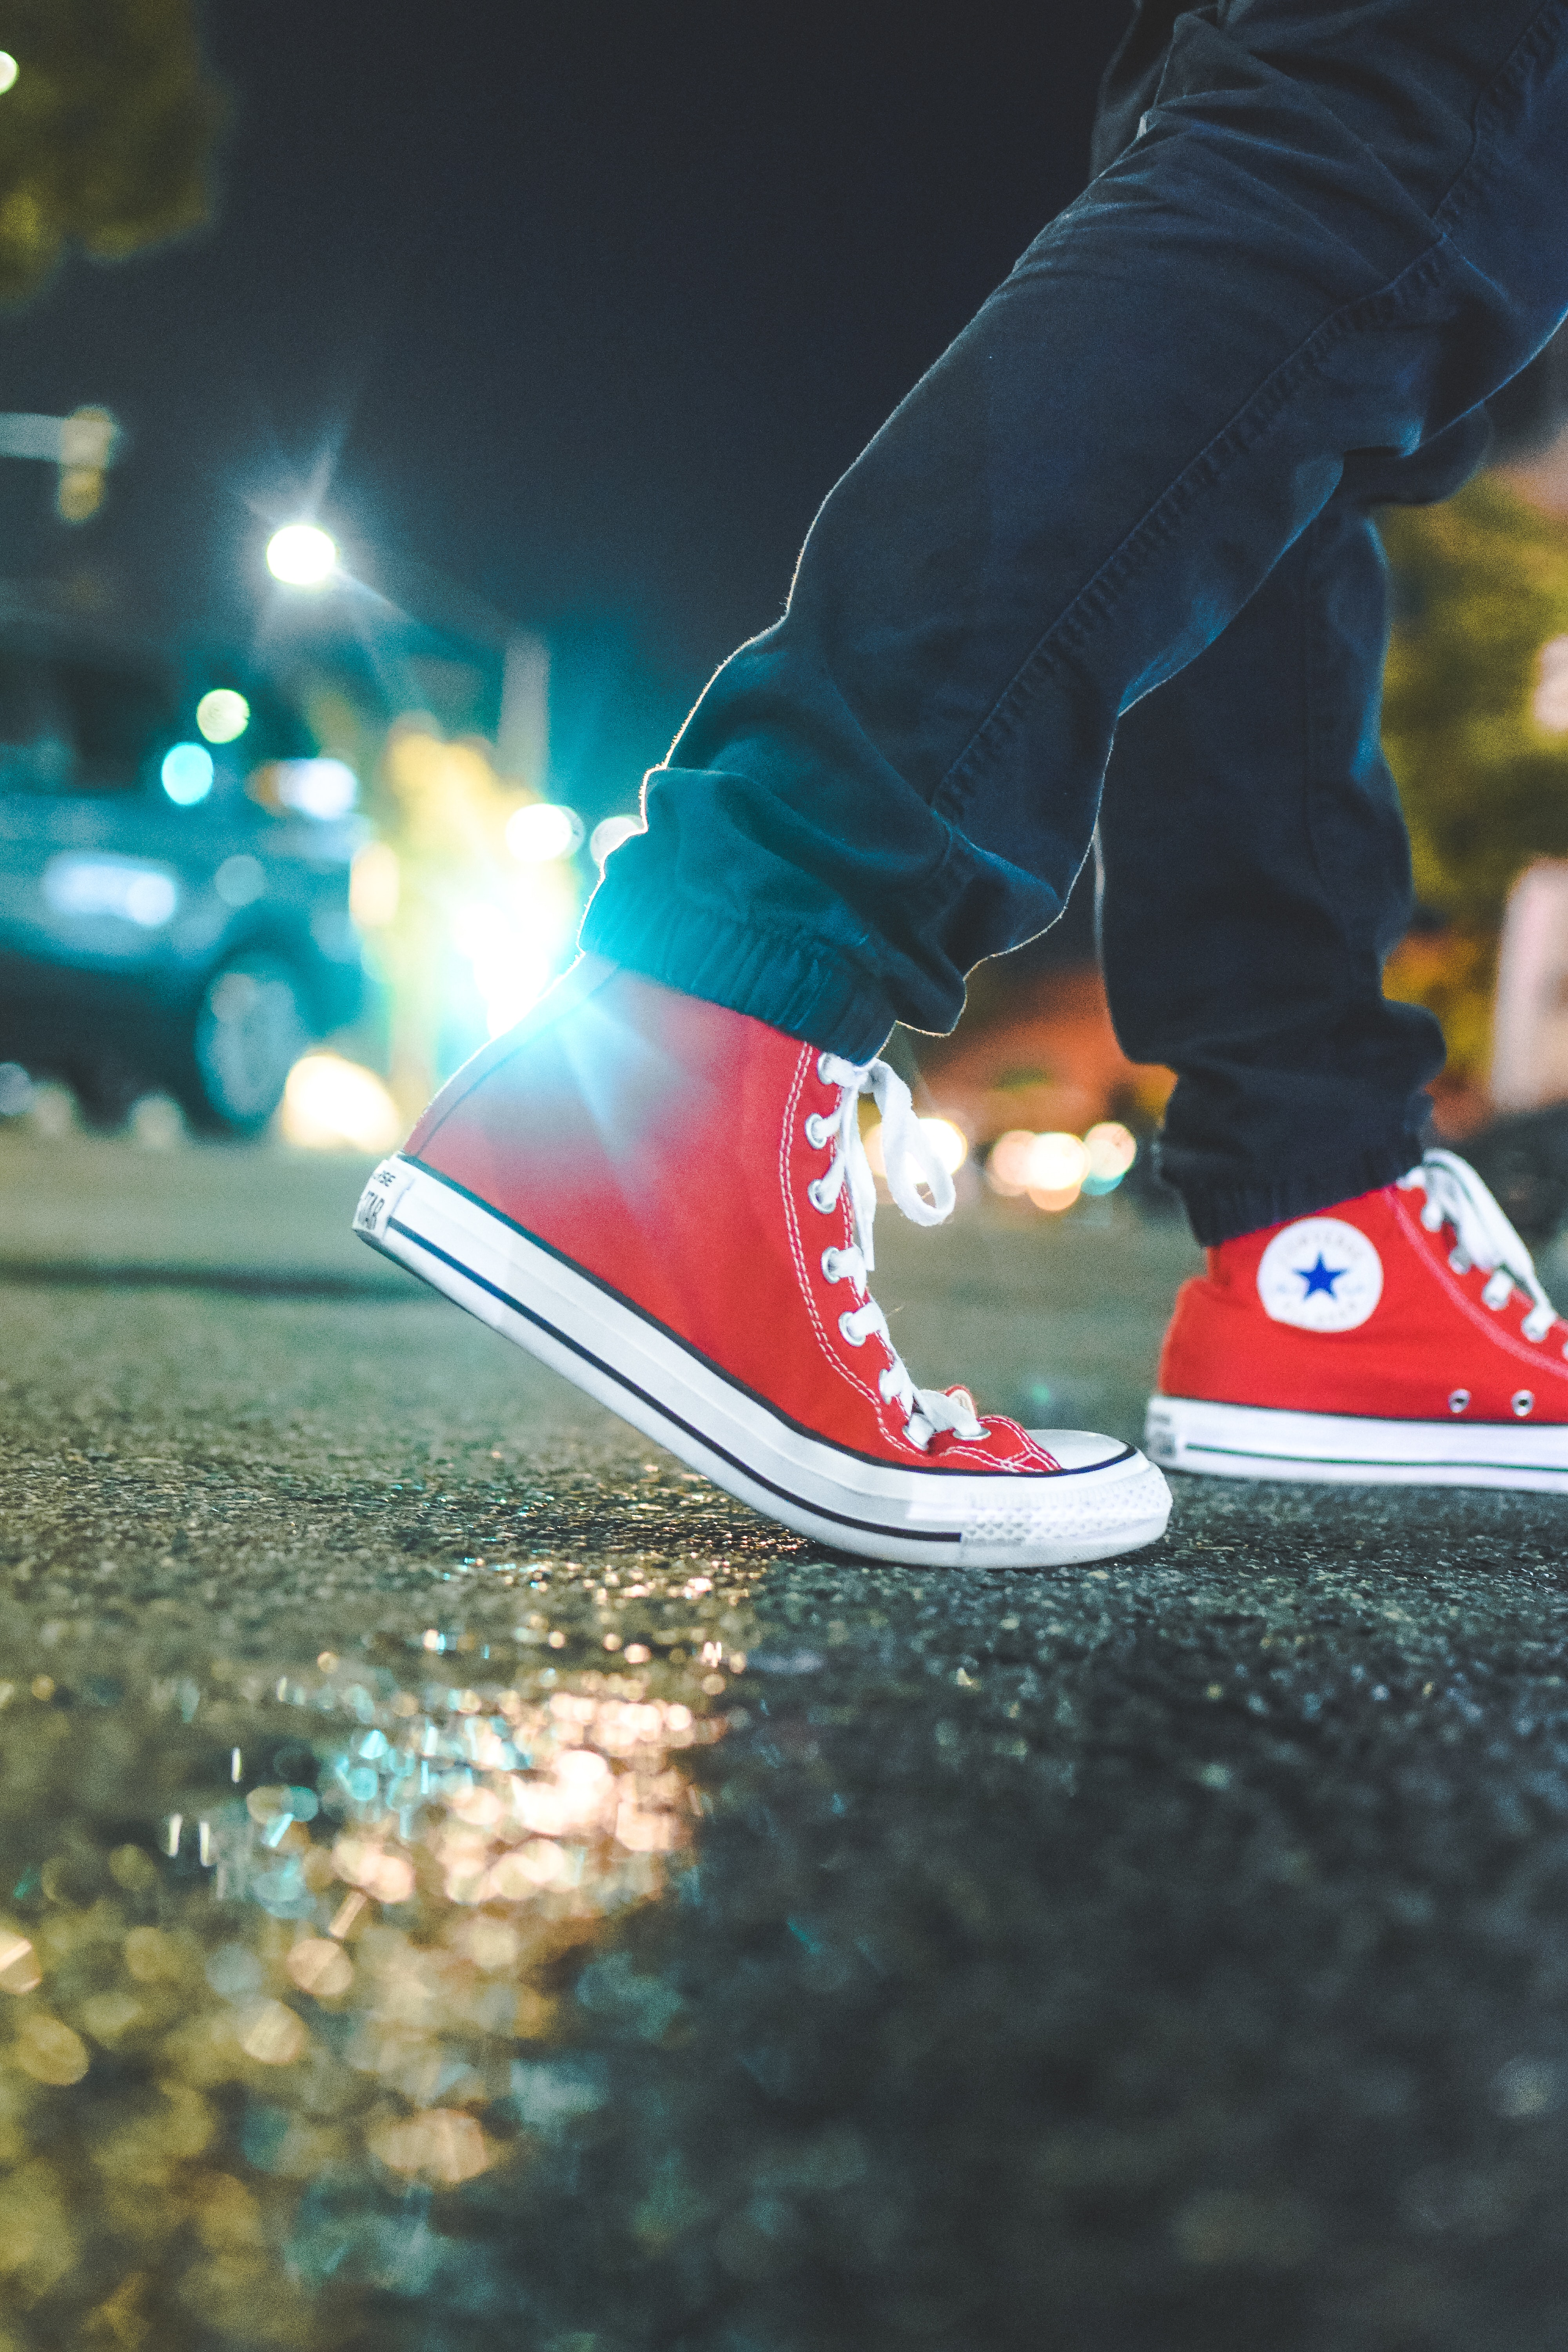 worm's eye view photo of person wearing pair of red Converse All Star sneakers